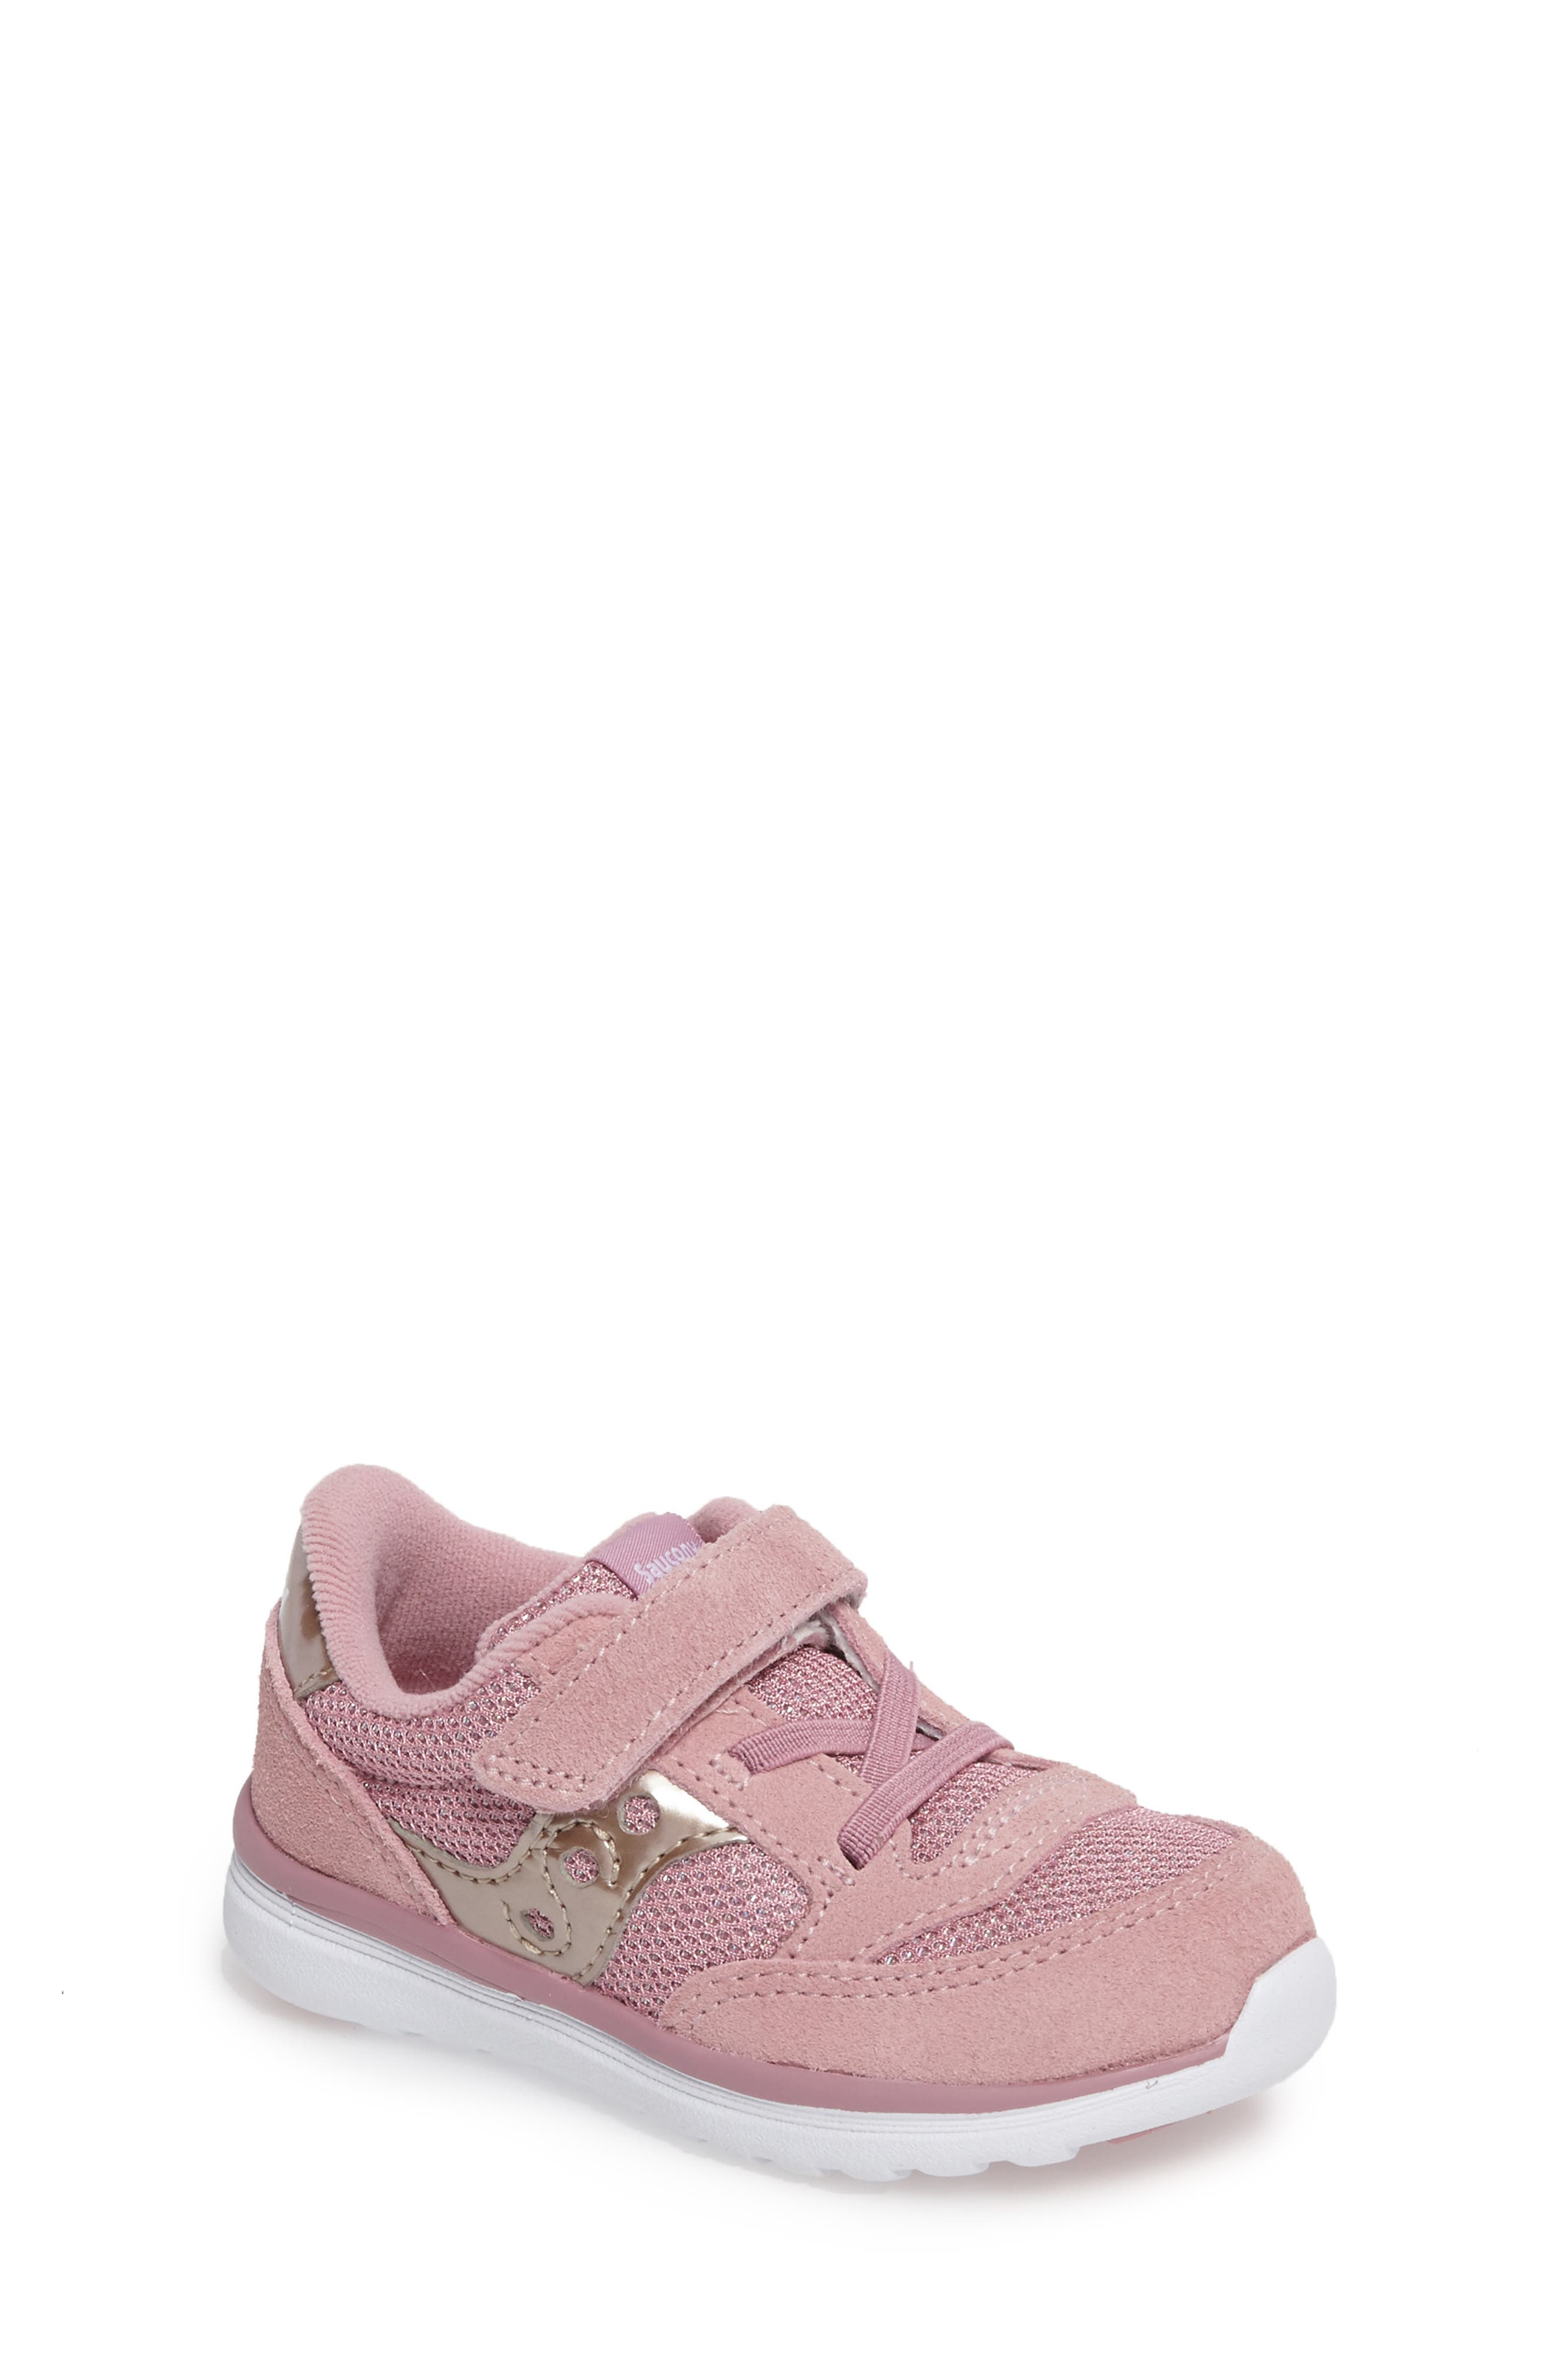 Jazz Lite Sneaker,                         Main,                         color, BLUSH METALLIC